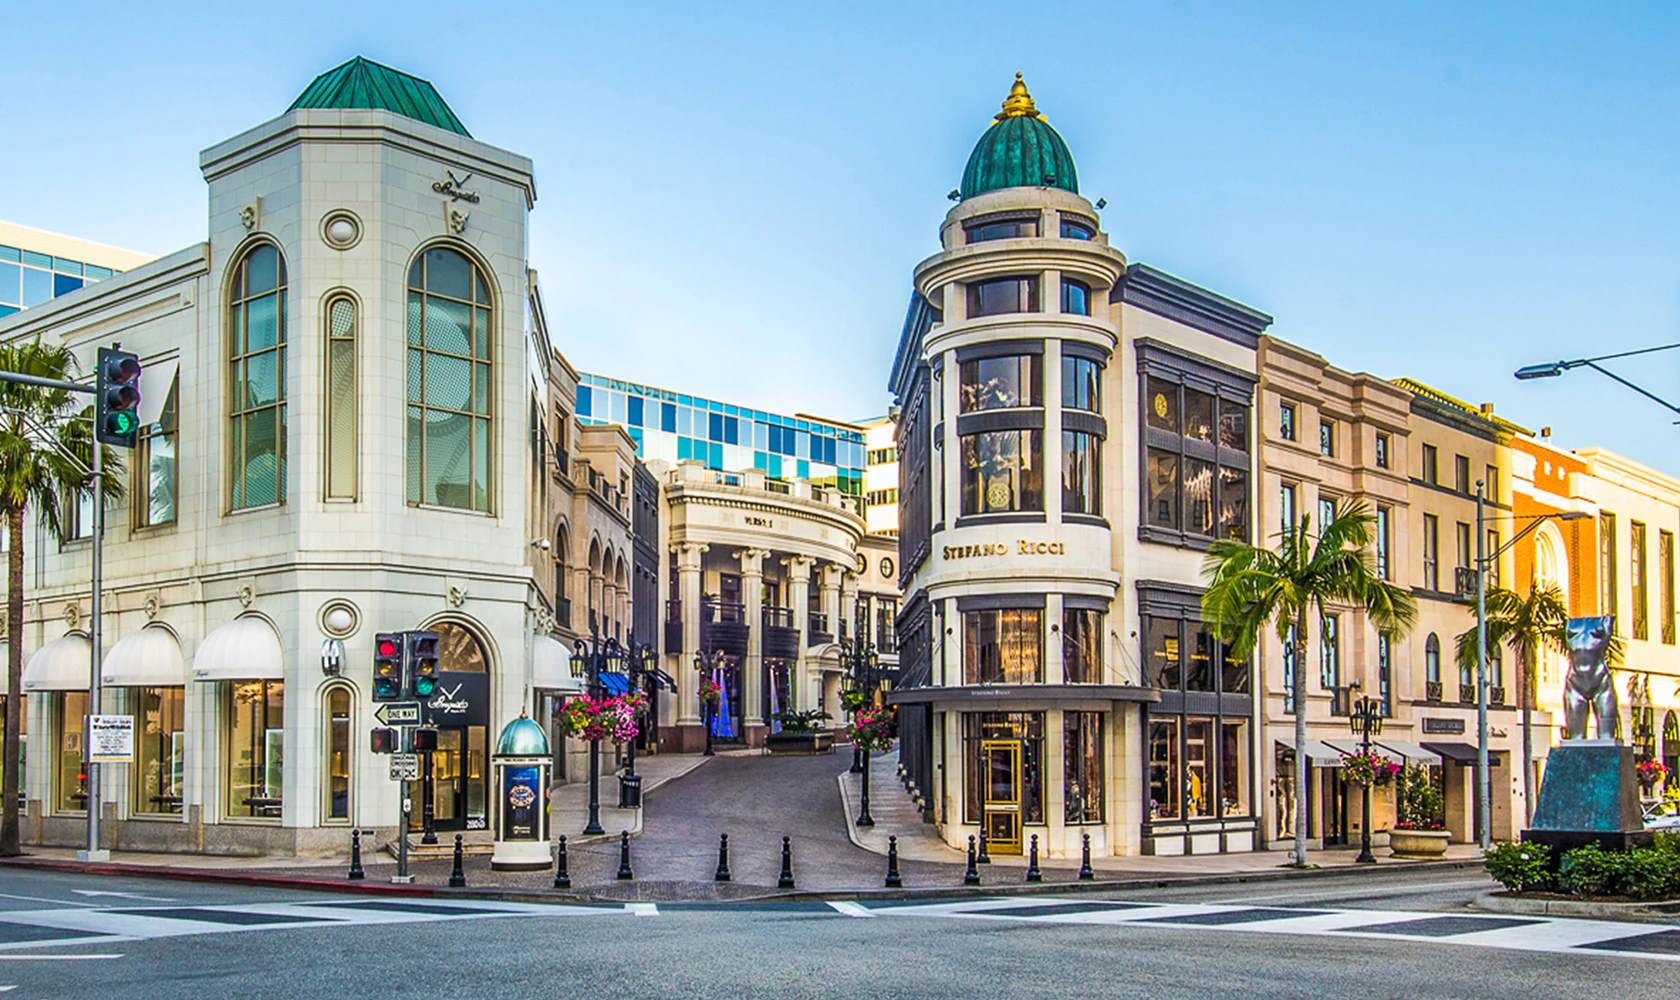 BEVERLY HILLS FLAGSHIP STORE